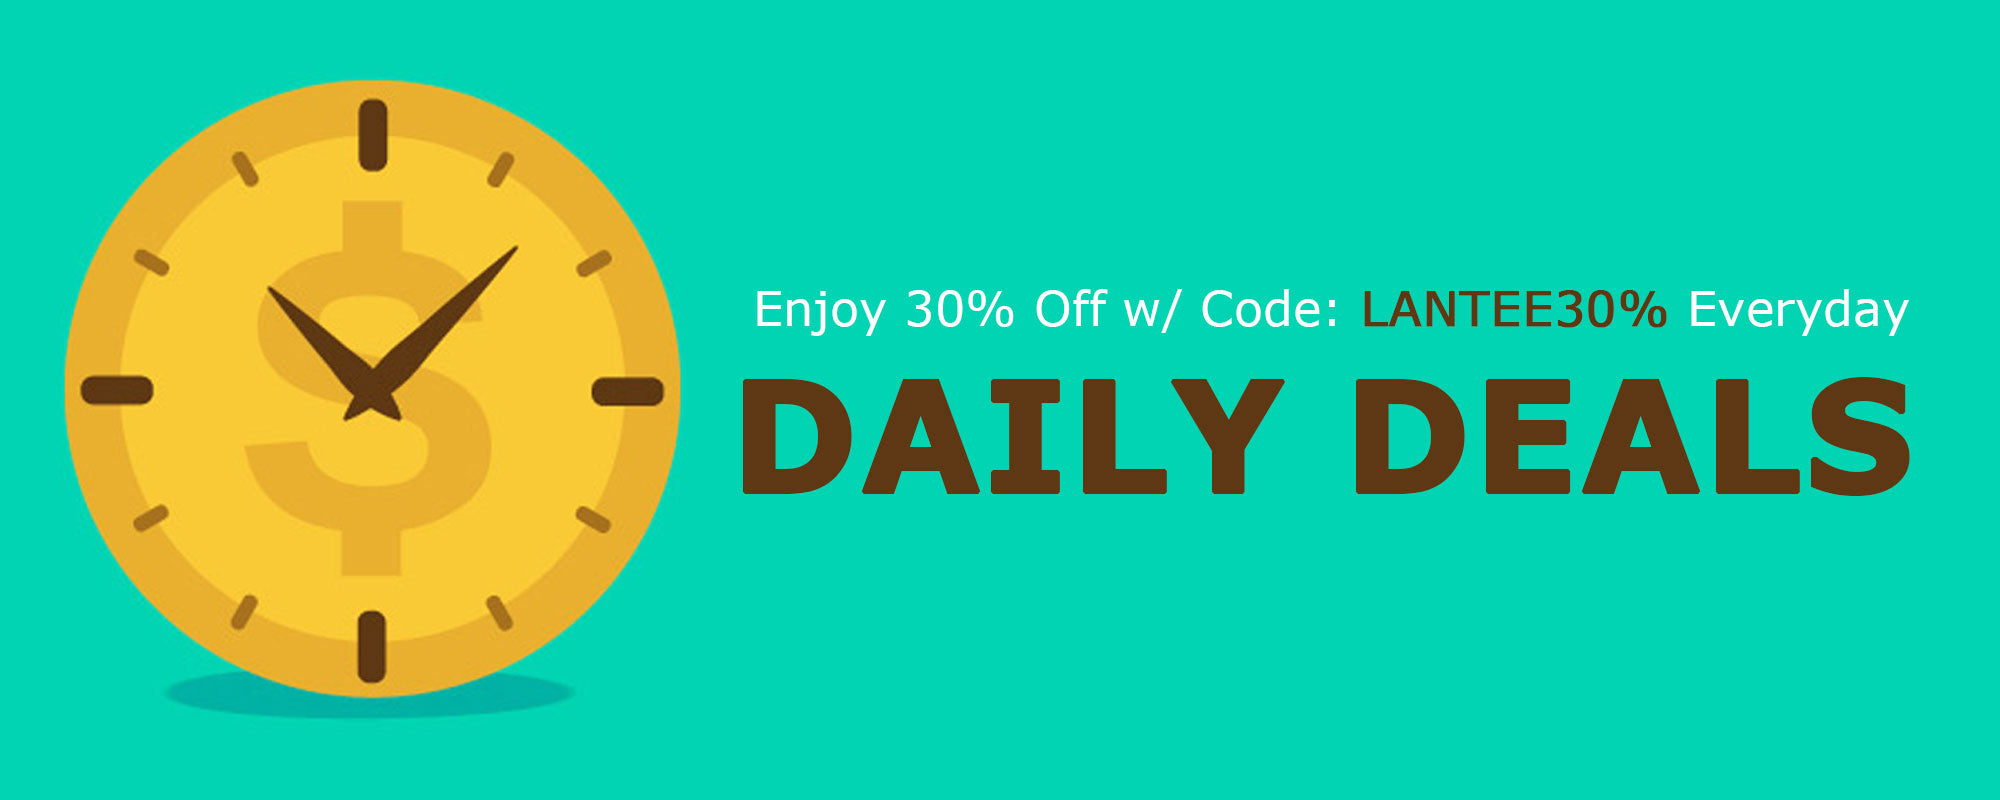 Lantee Daily Deals